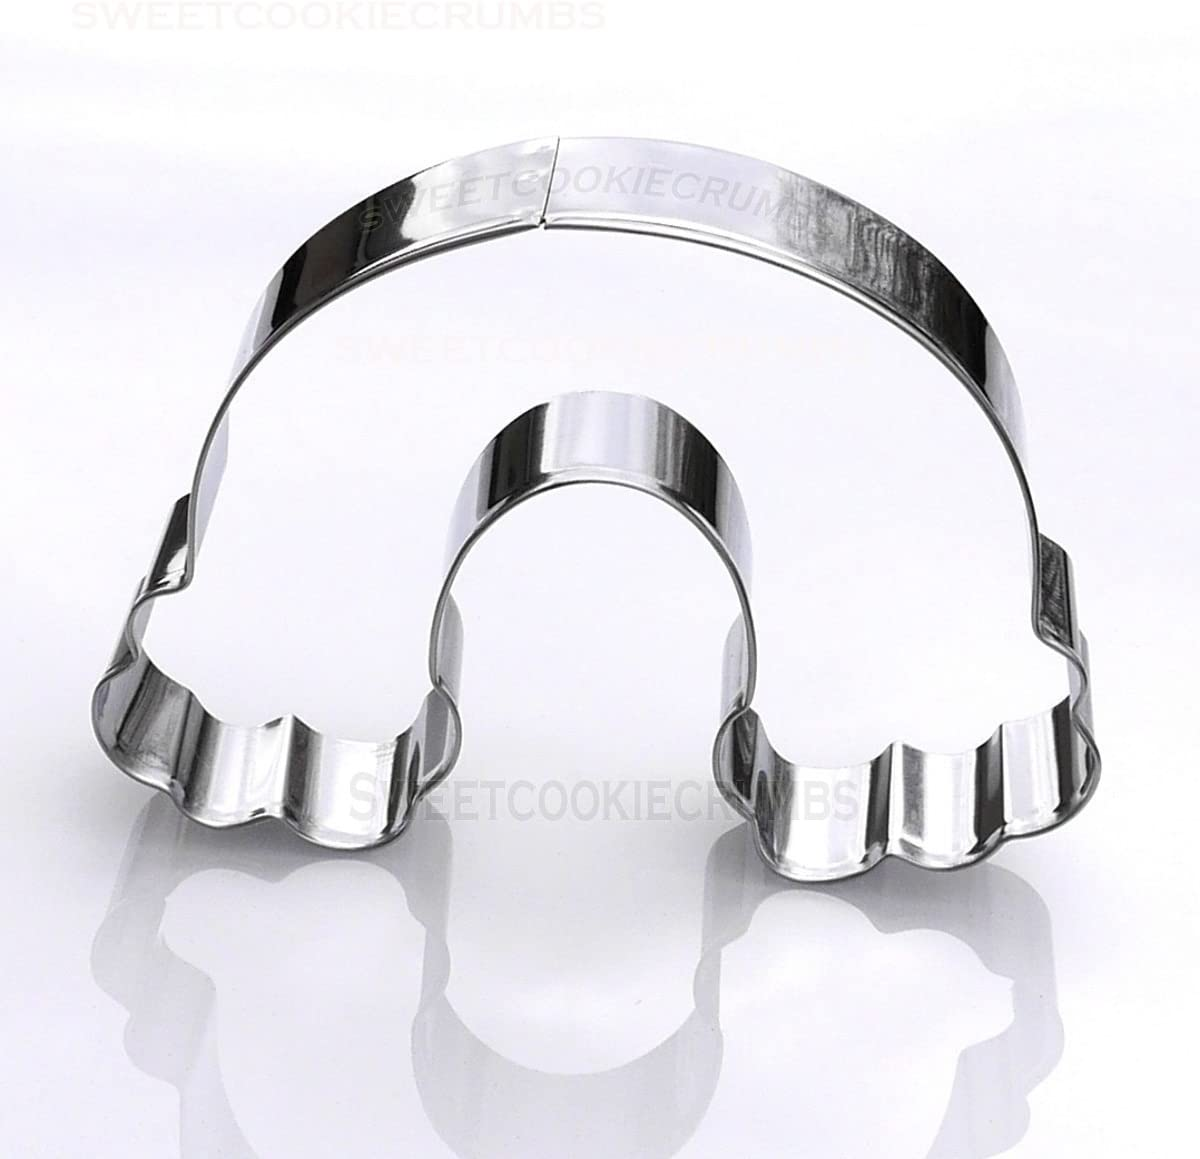 Rainbow Max 87% OFF Cloud Cookie Cutter lowest price Stainless Steel -